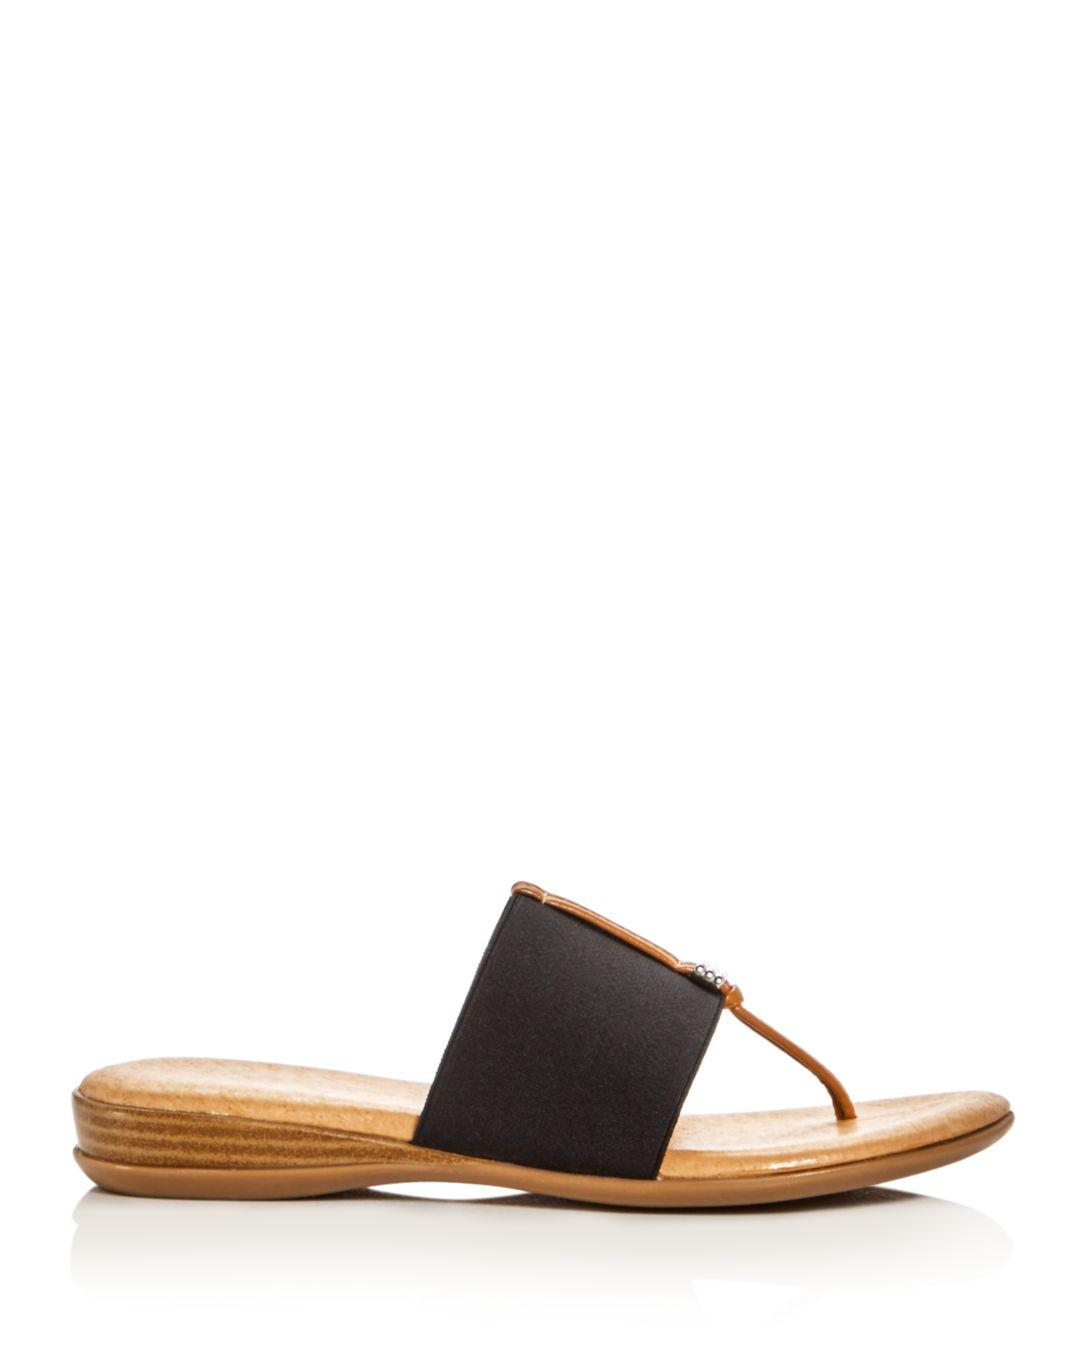 bf68c261c9c4 Lyst - Andre Assous Nice Thong Sandals in Black